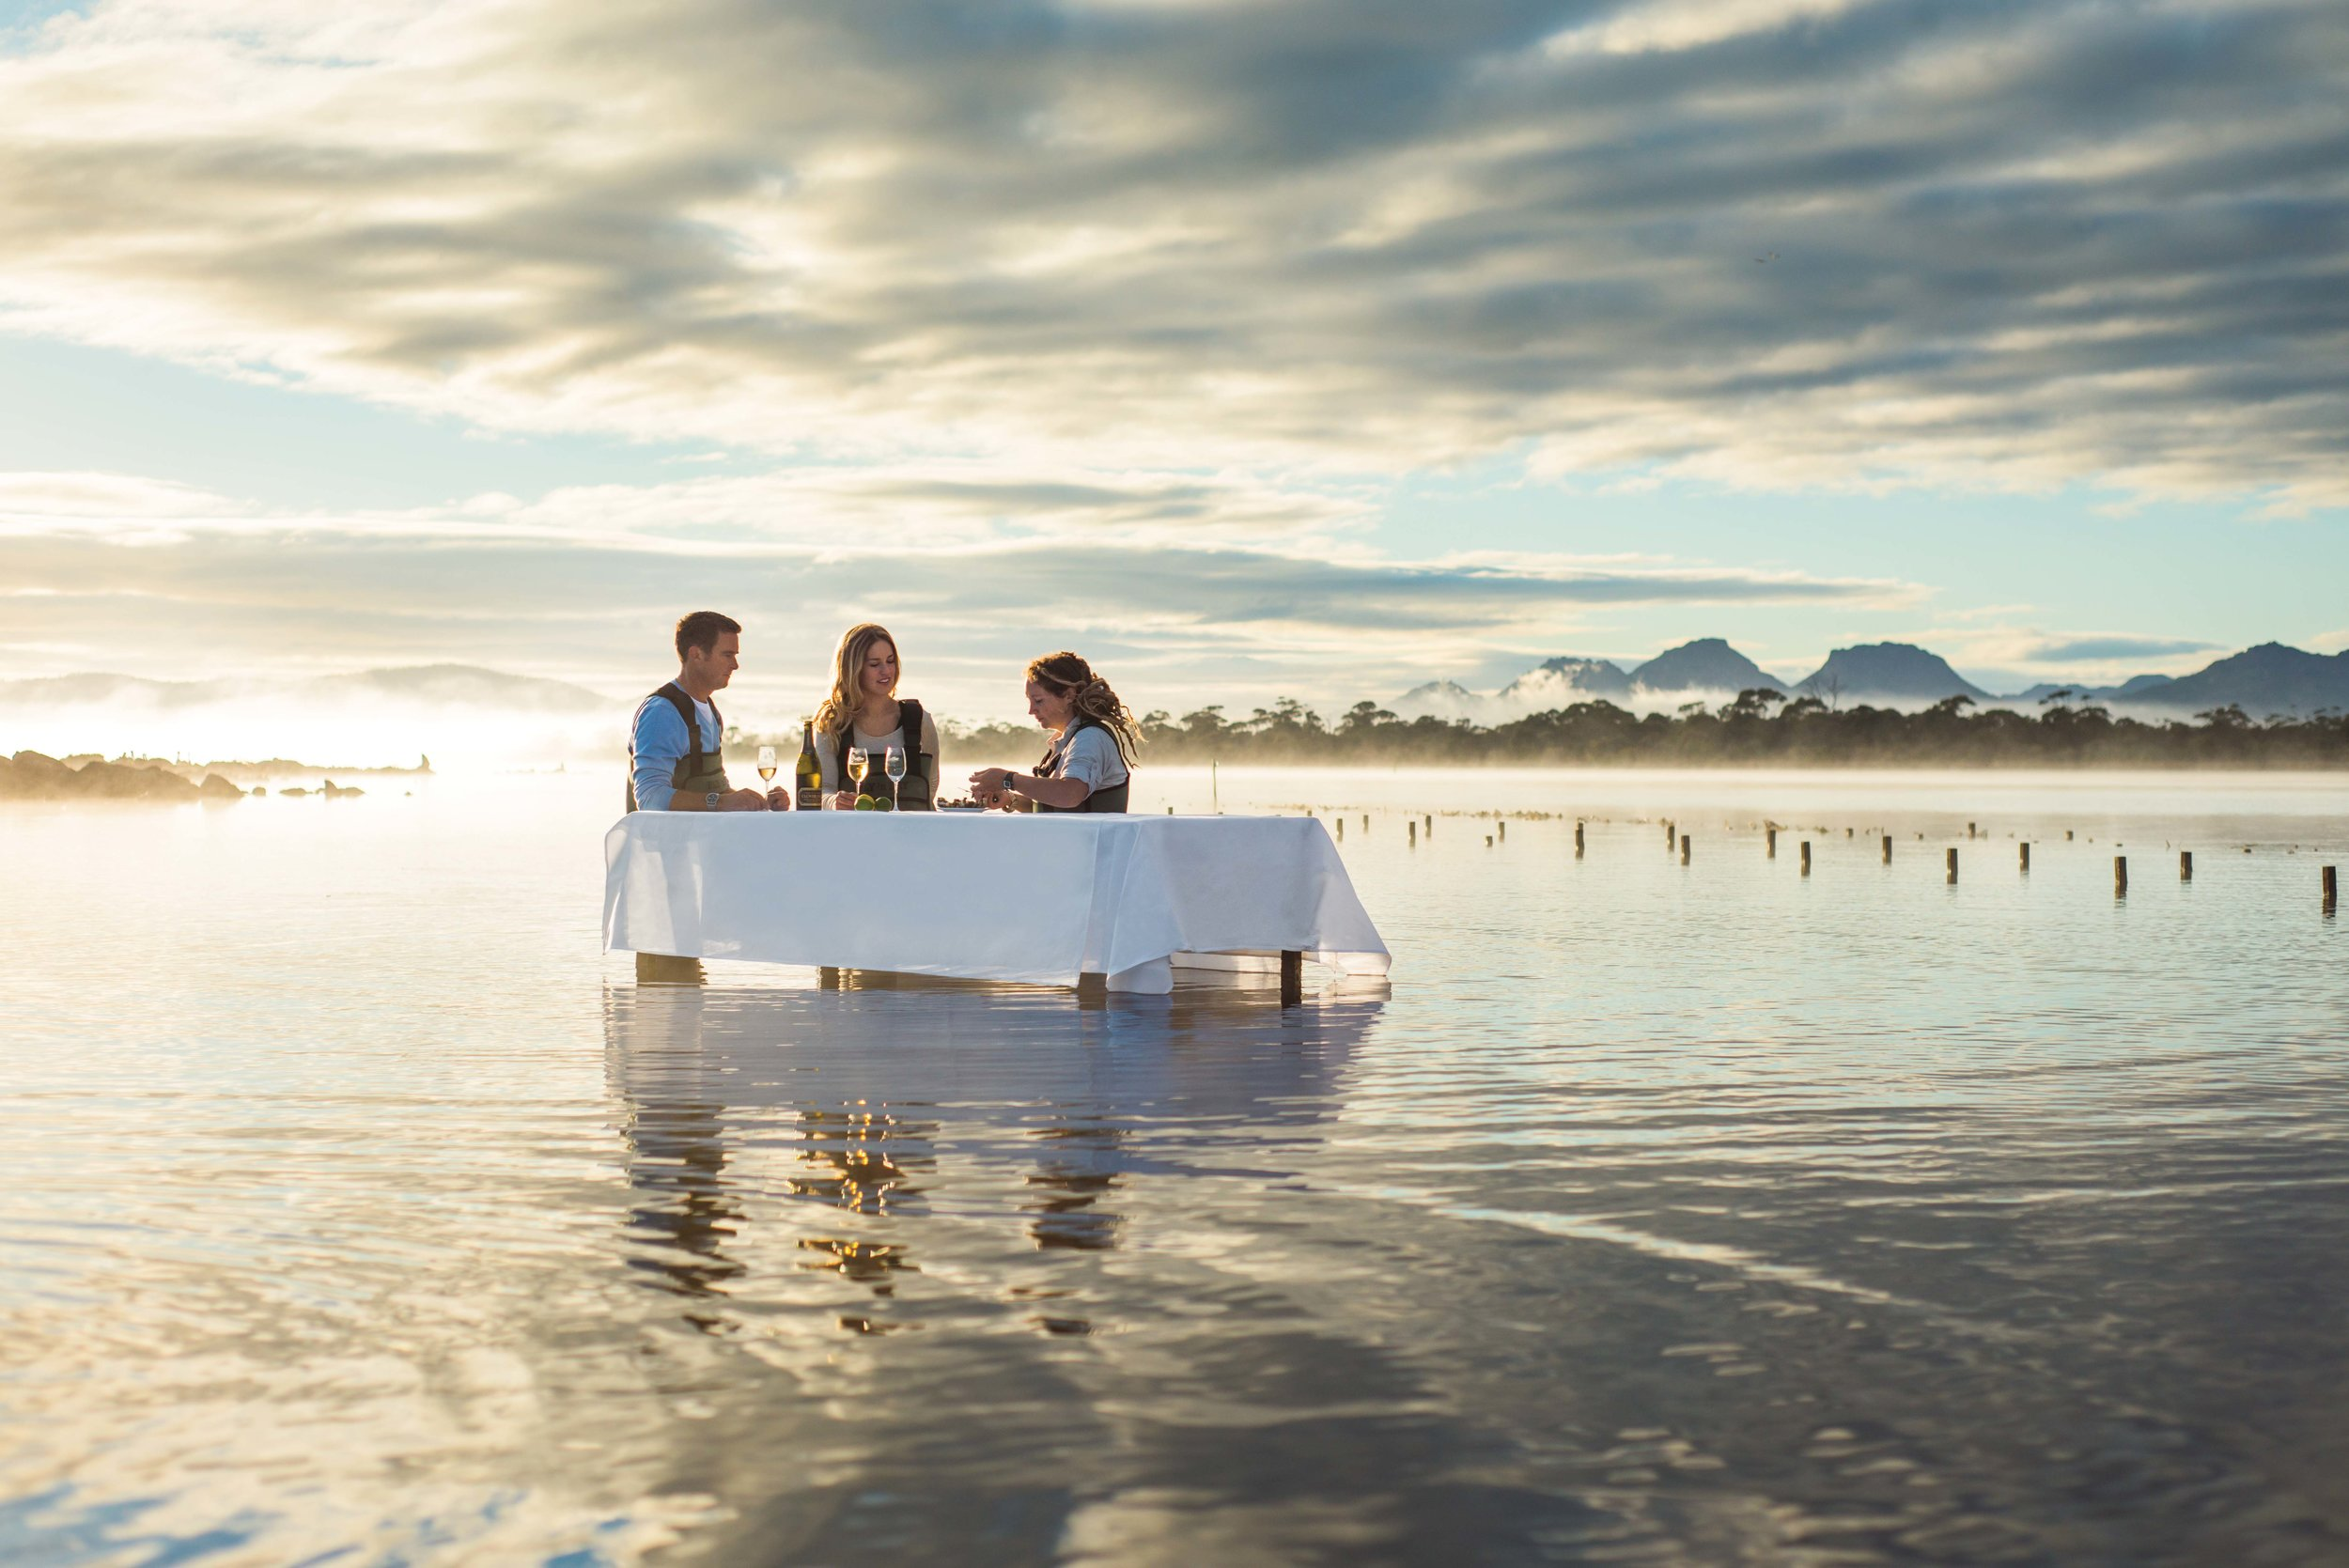 marine oyster farm - Don a pair of waders and visit a working oyster farm located in a beautiful setting within an internationally significant wetland and ornithological site. Develop an understanding for wetland and marine ecology, plus a taste for prized Pacific oysters.